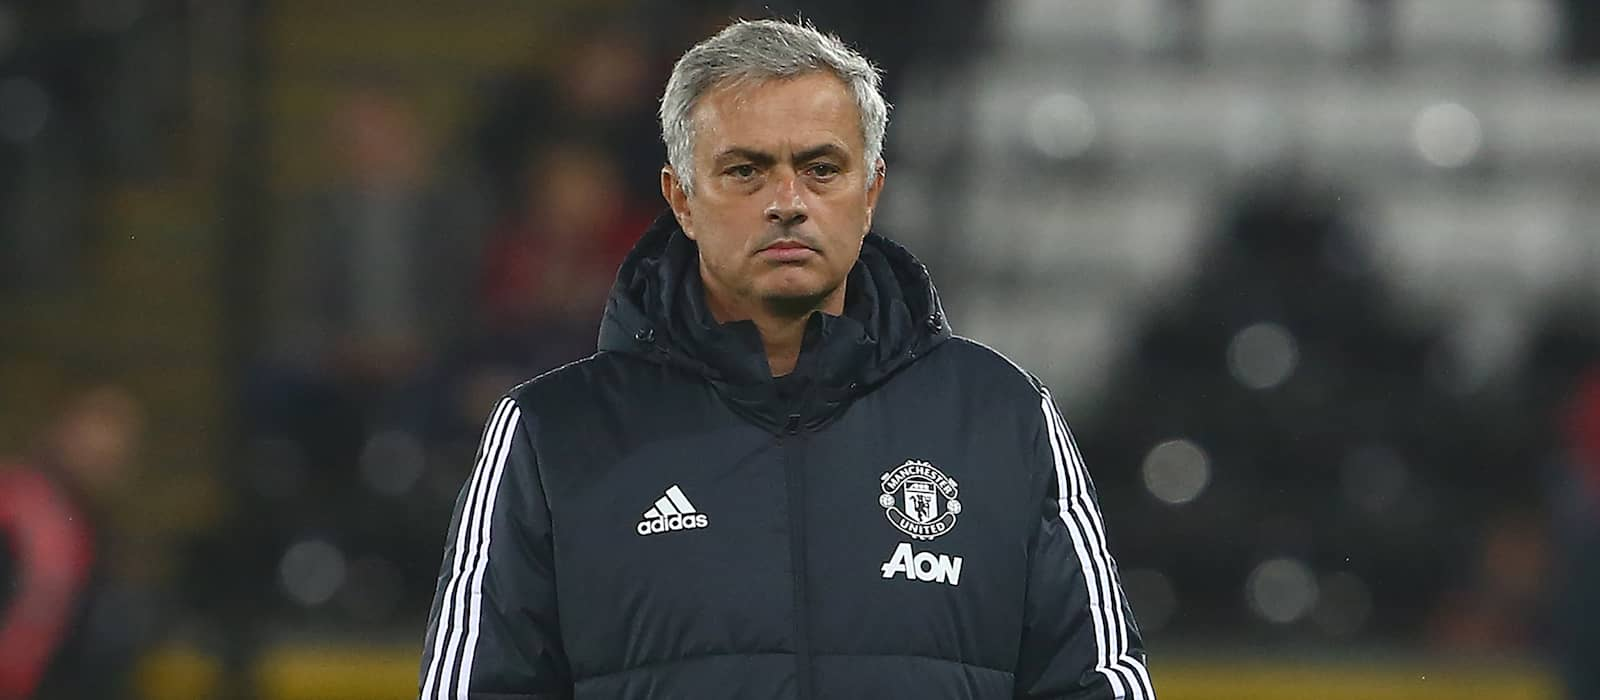 Jose Mourinho proclaims that he is one of the world's greatest managers